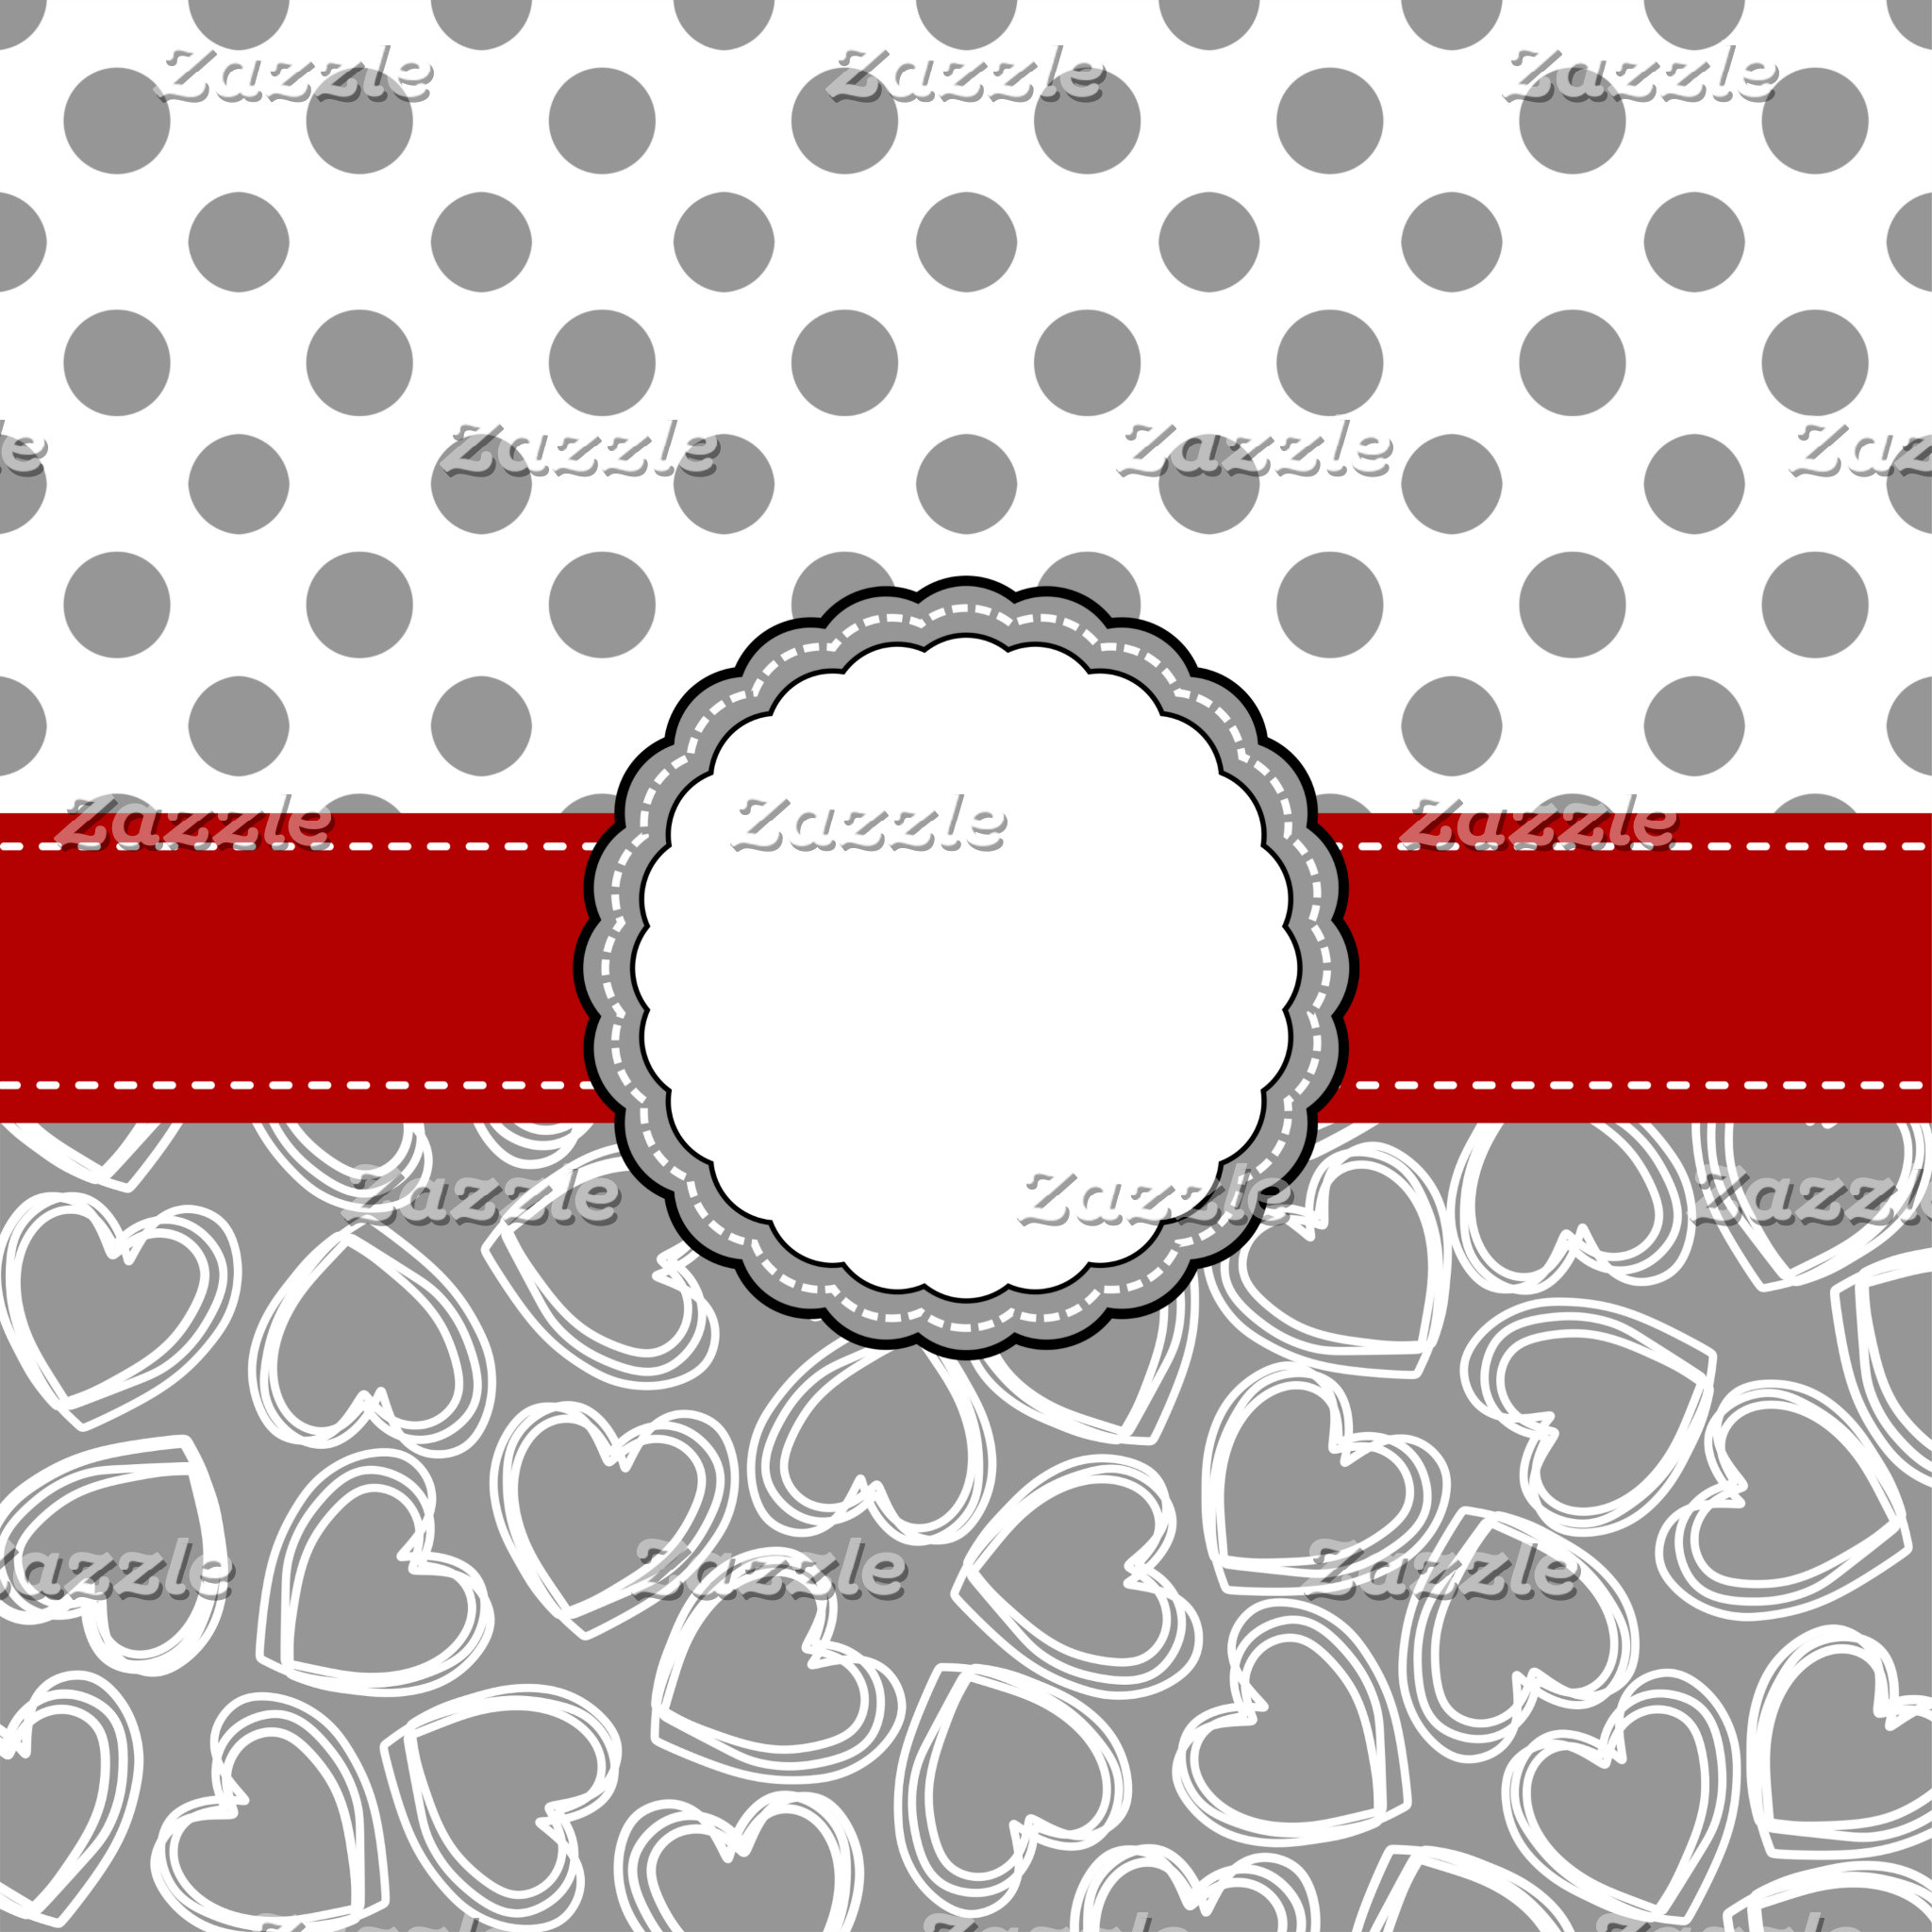 ALL THINGS GRAY AND WHITE DOTS AND HEARTS